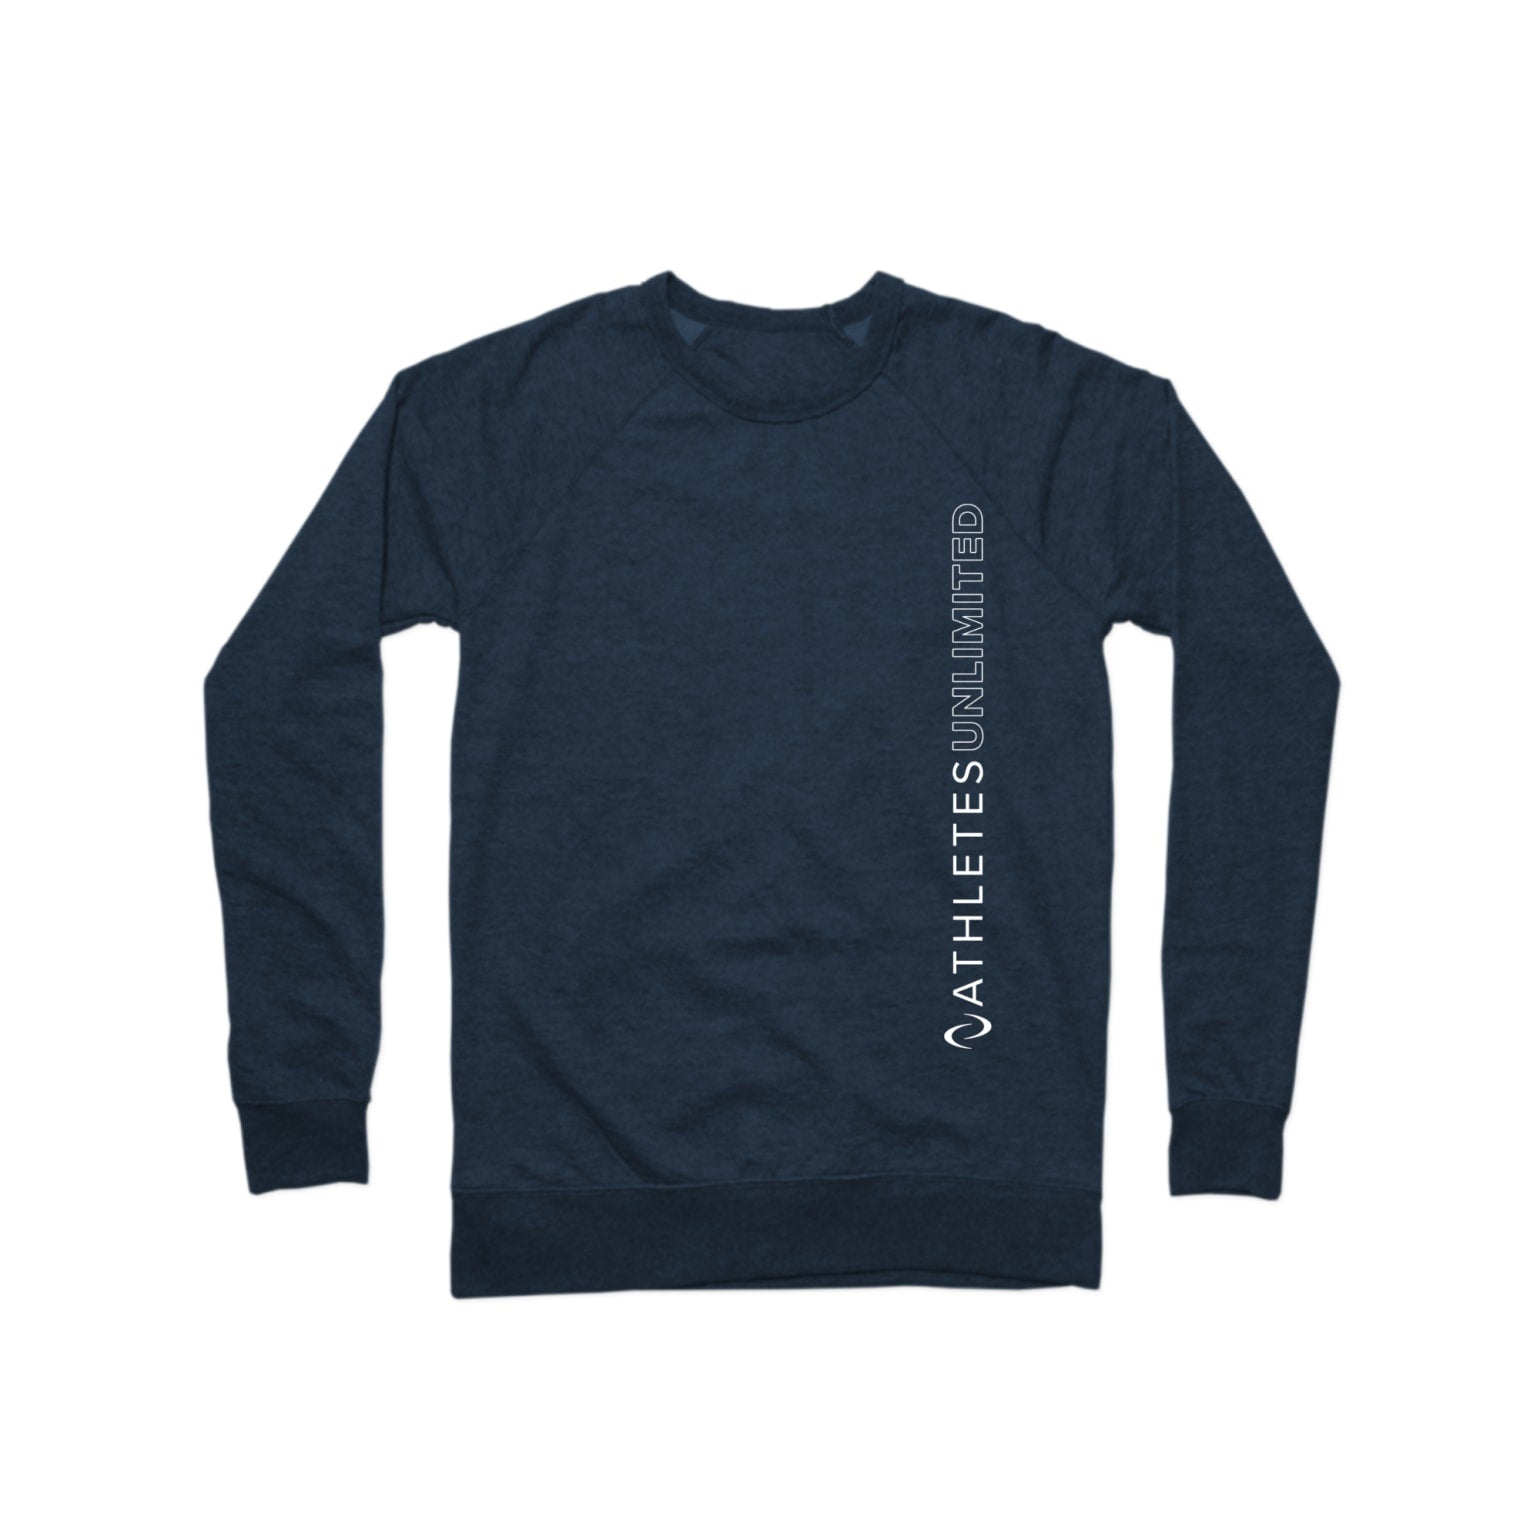 AU Unlimited Club Pastel Crewneck